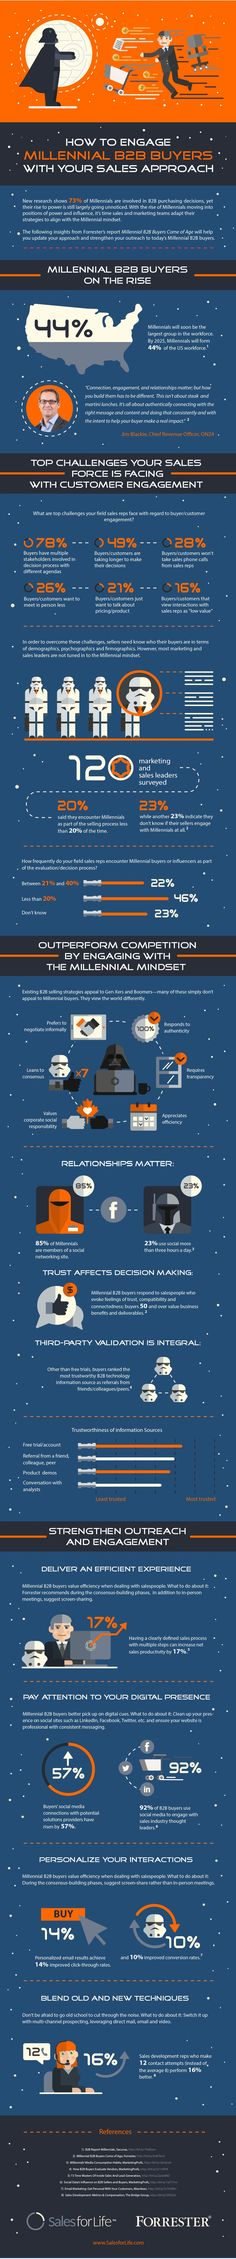 engage-millenial-buyers-infographic.jpg